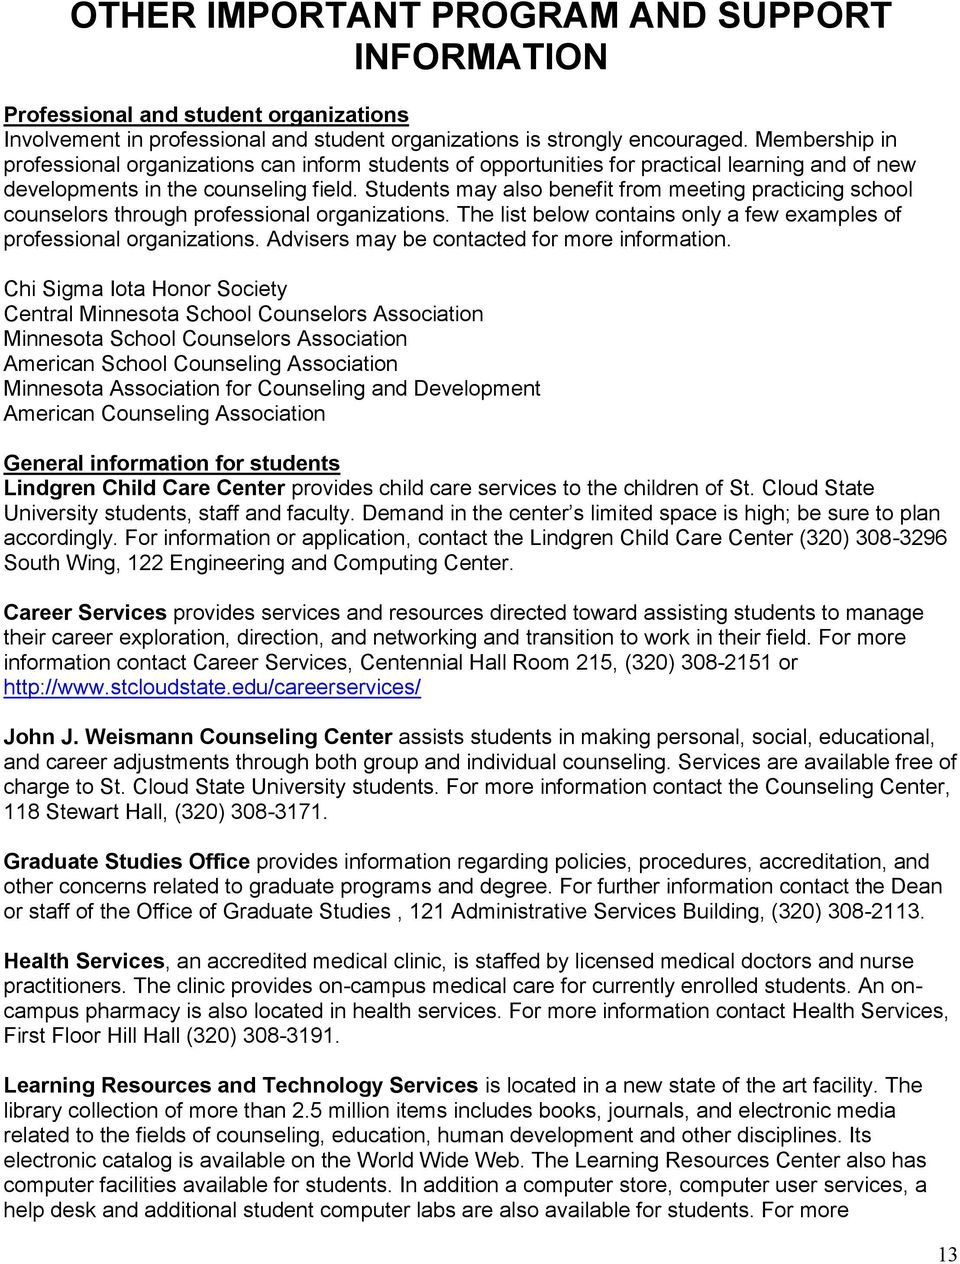 Students may also benefit from meeting practicing school counselors through professional organizations. The list below contains only a few examples of professional organizations.